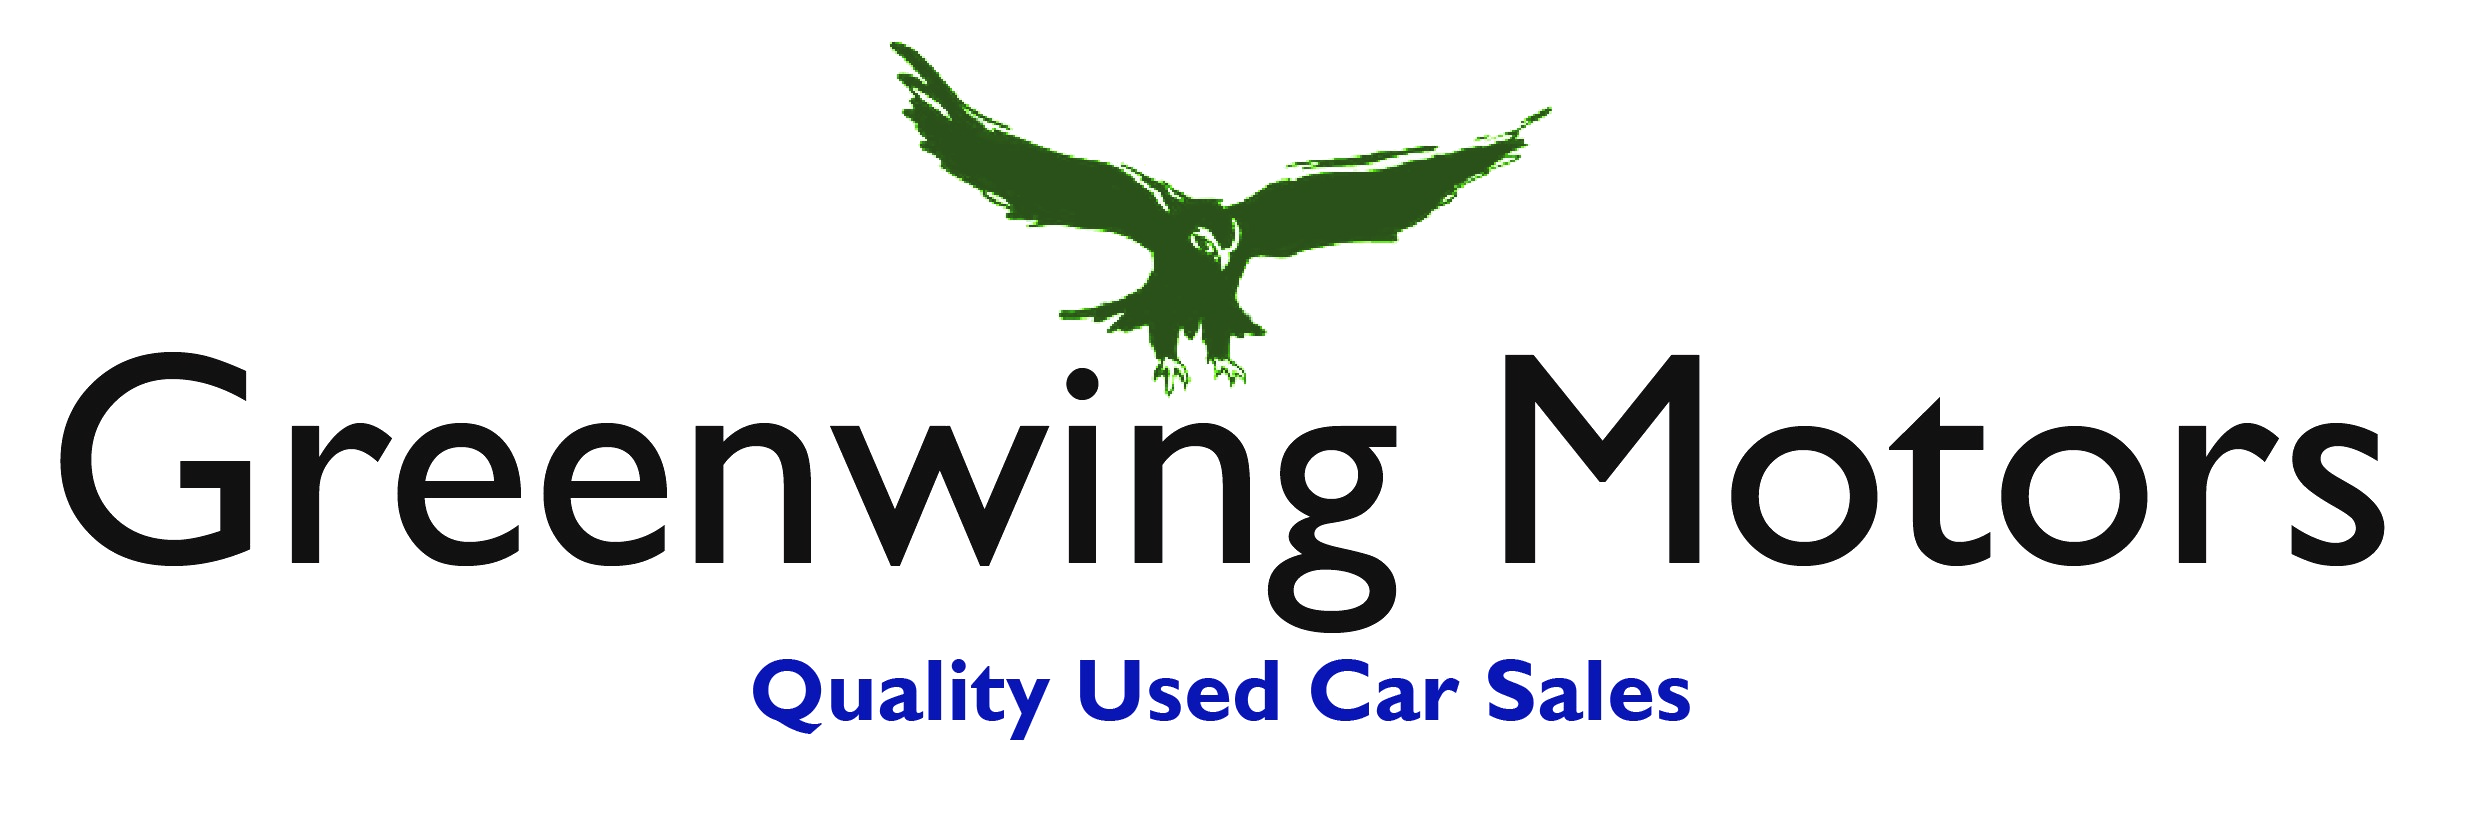 Greenwing Motor Company Ltd Logo